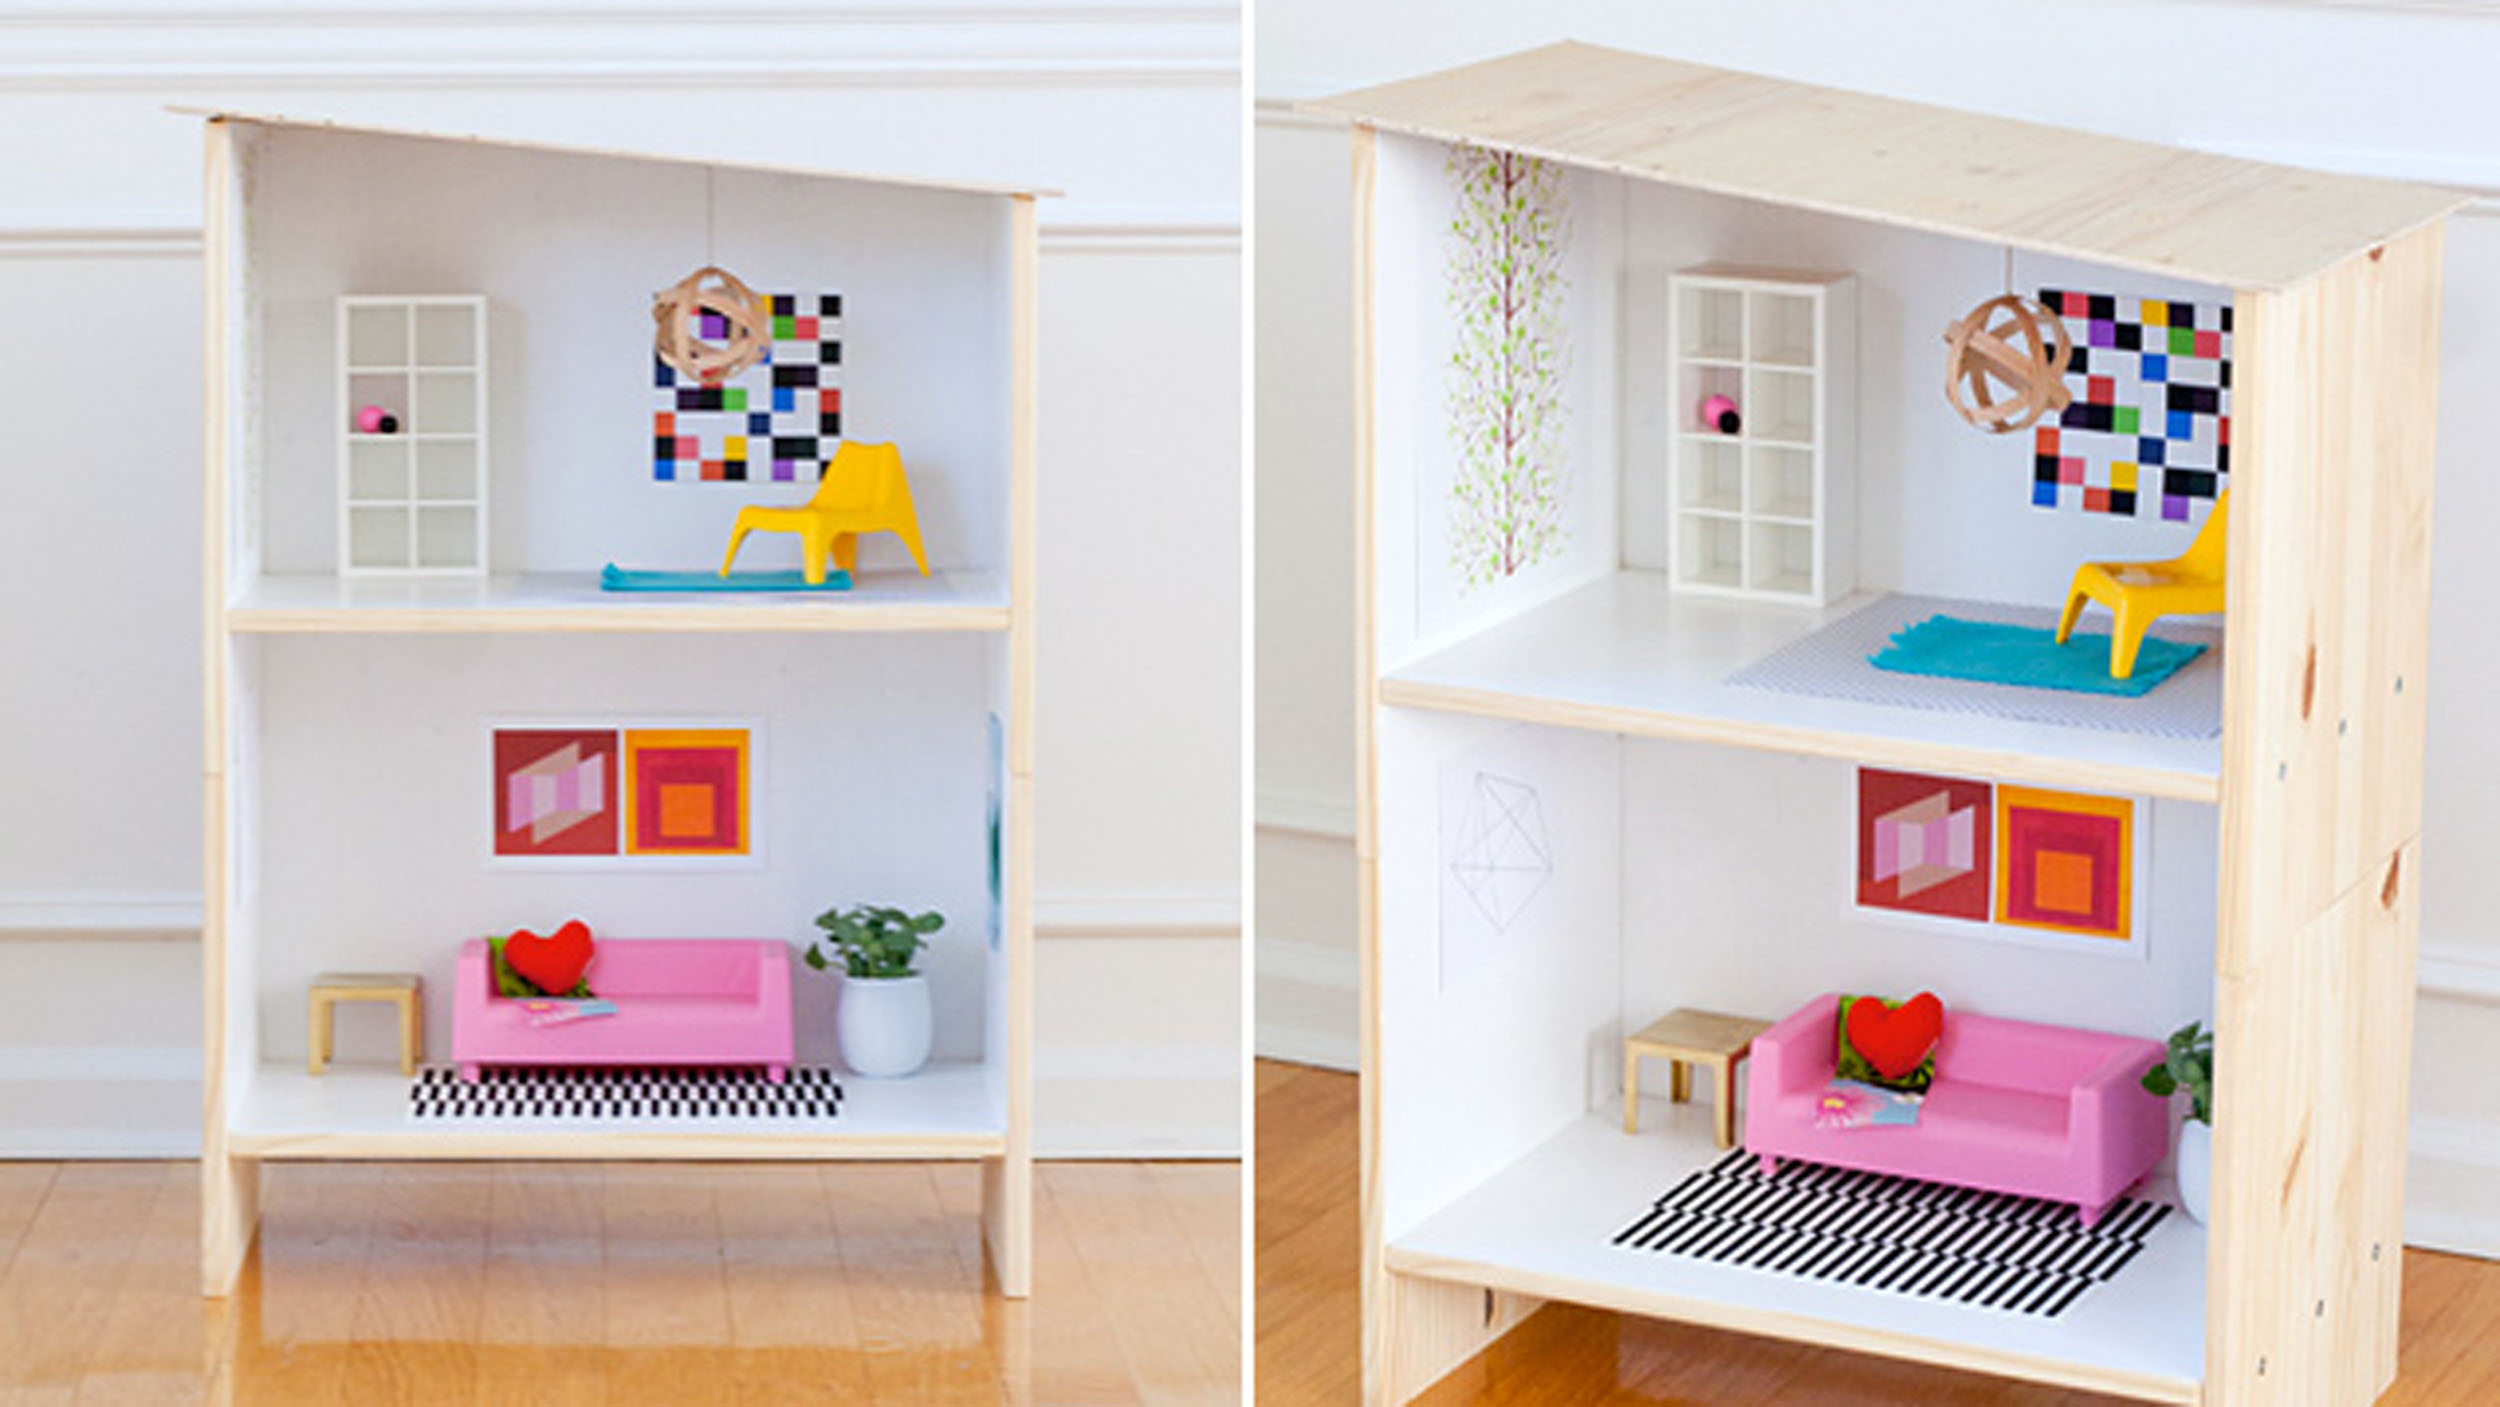 Ikea Huset Doll Furniture. Ikea Huset Doll Furniture T